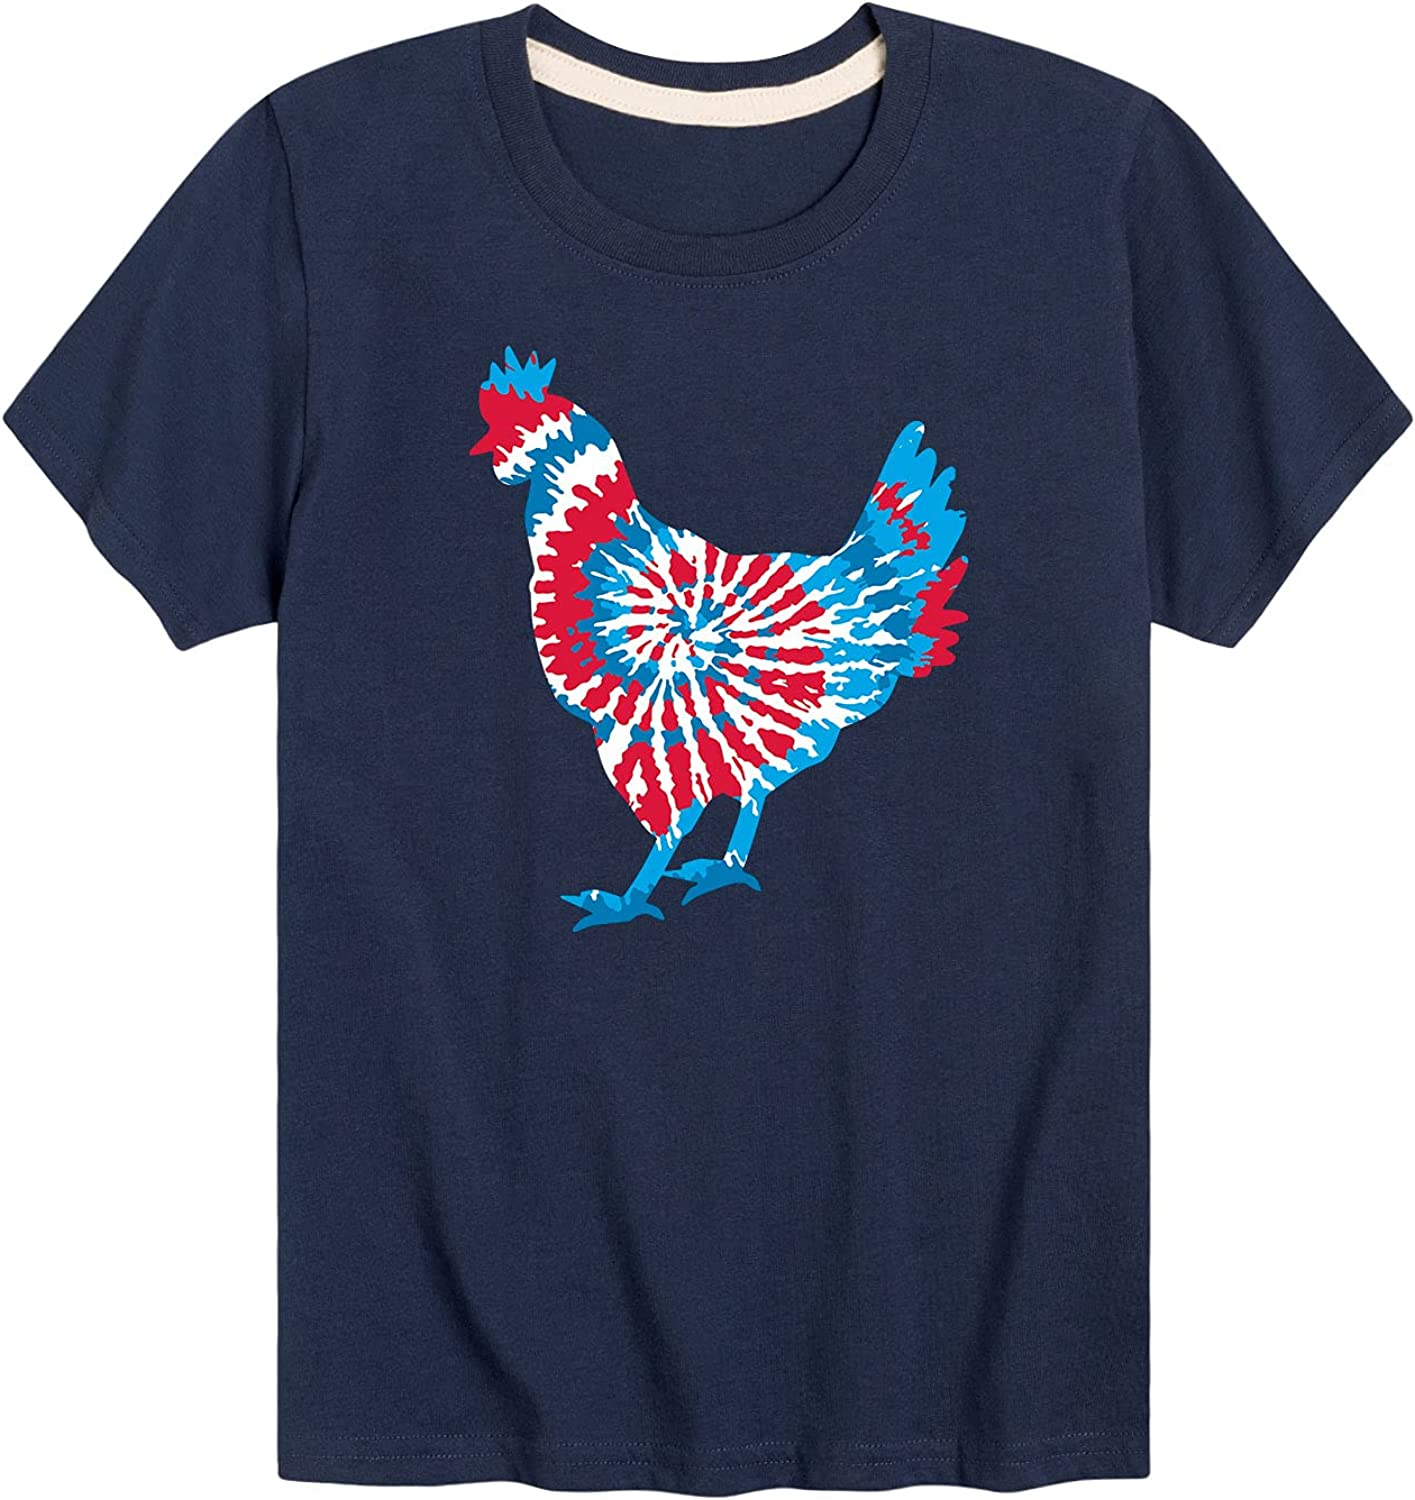 Instant Message Tie Dye Chicken Patriotic - Toddler and Youth Short Sleeve Graphic T-Shirt